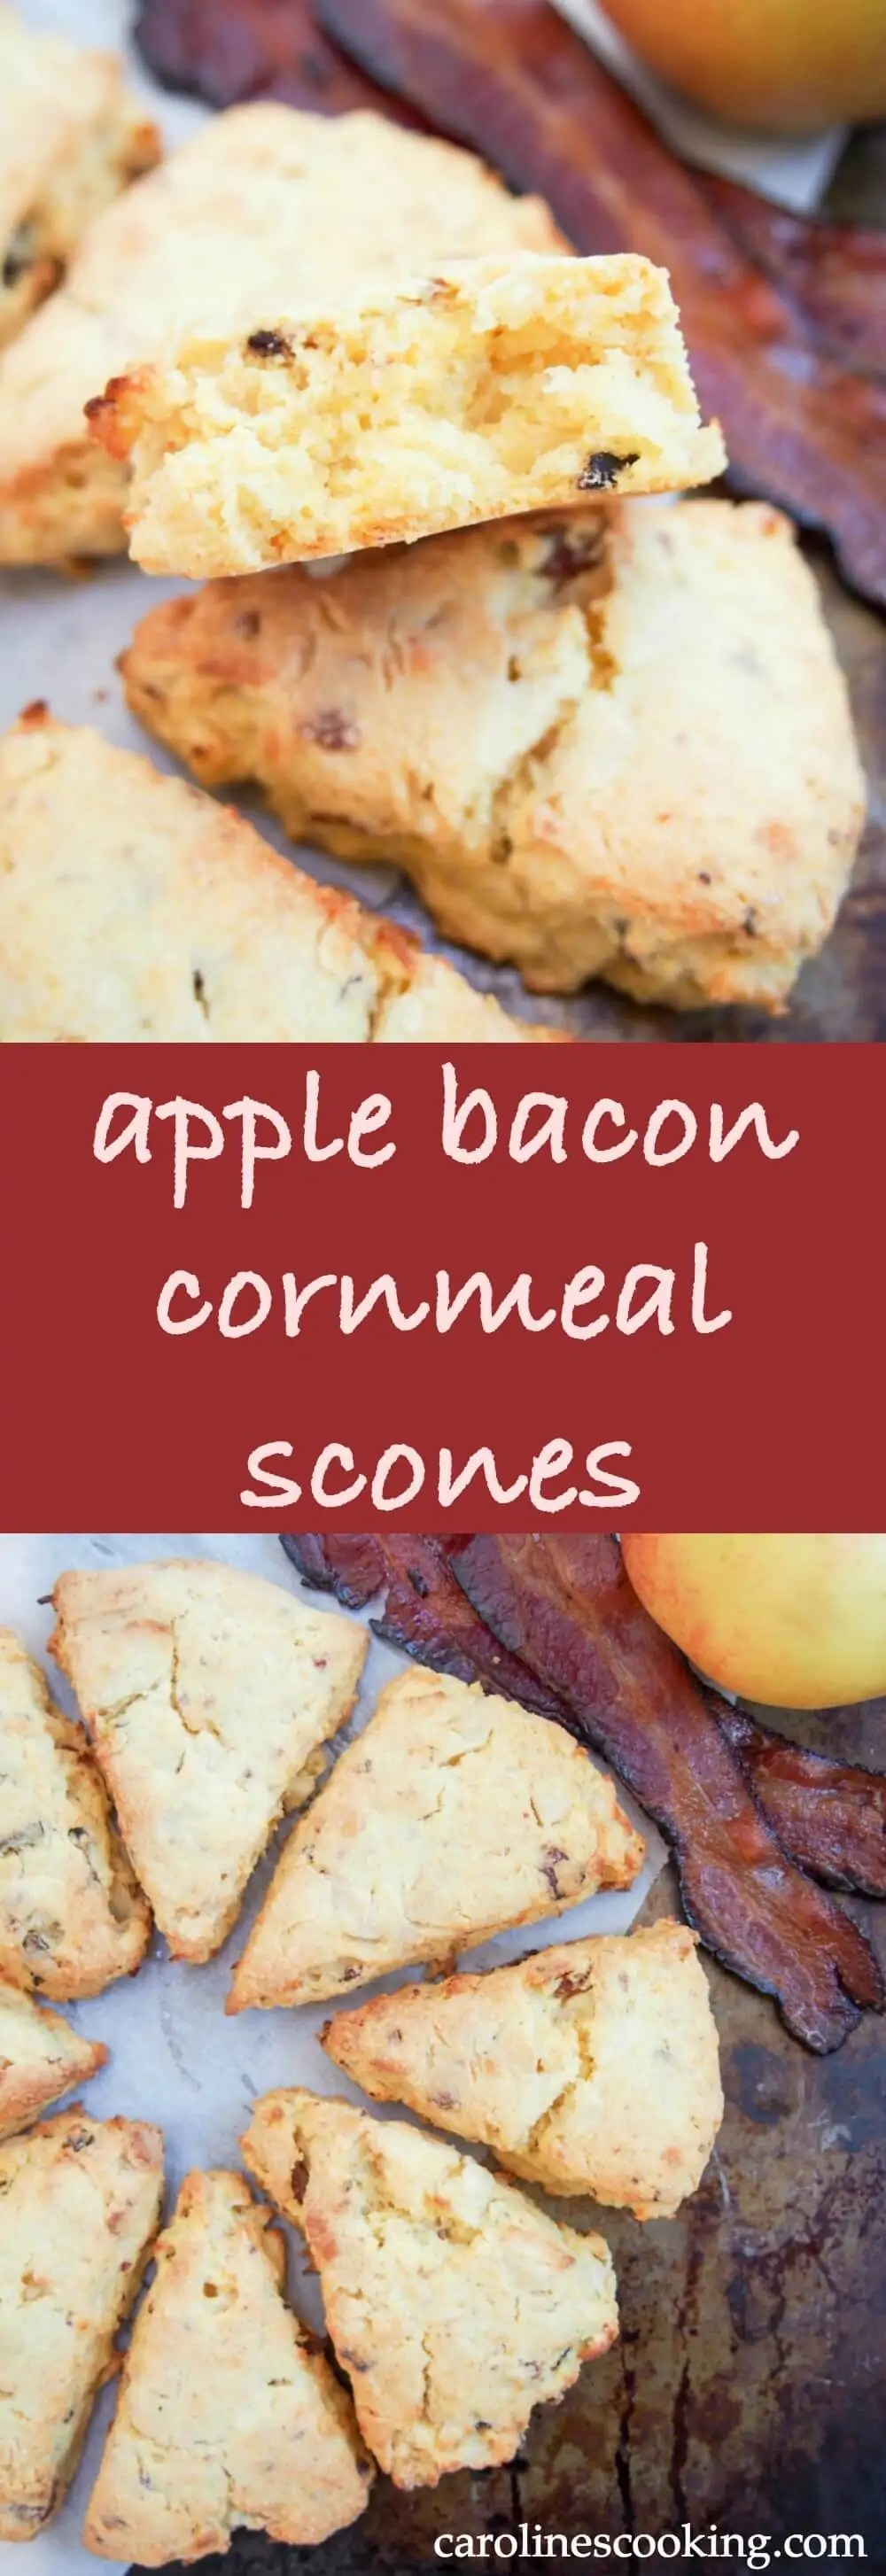 These apple and bacon cornmeal scones are moist and delicious, with a wonderful sweet-savory flavor combination. Such a tasty snack, you'll be back for more.